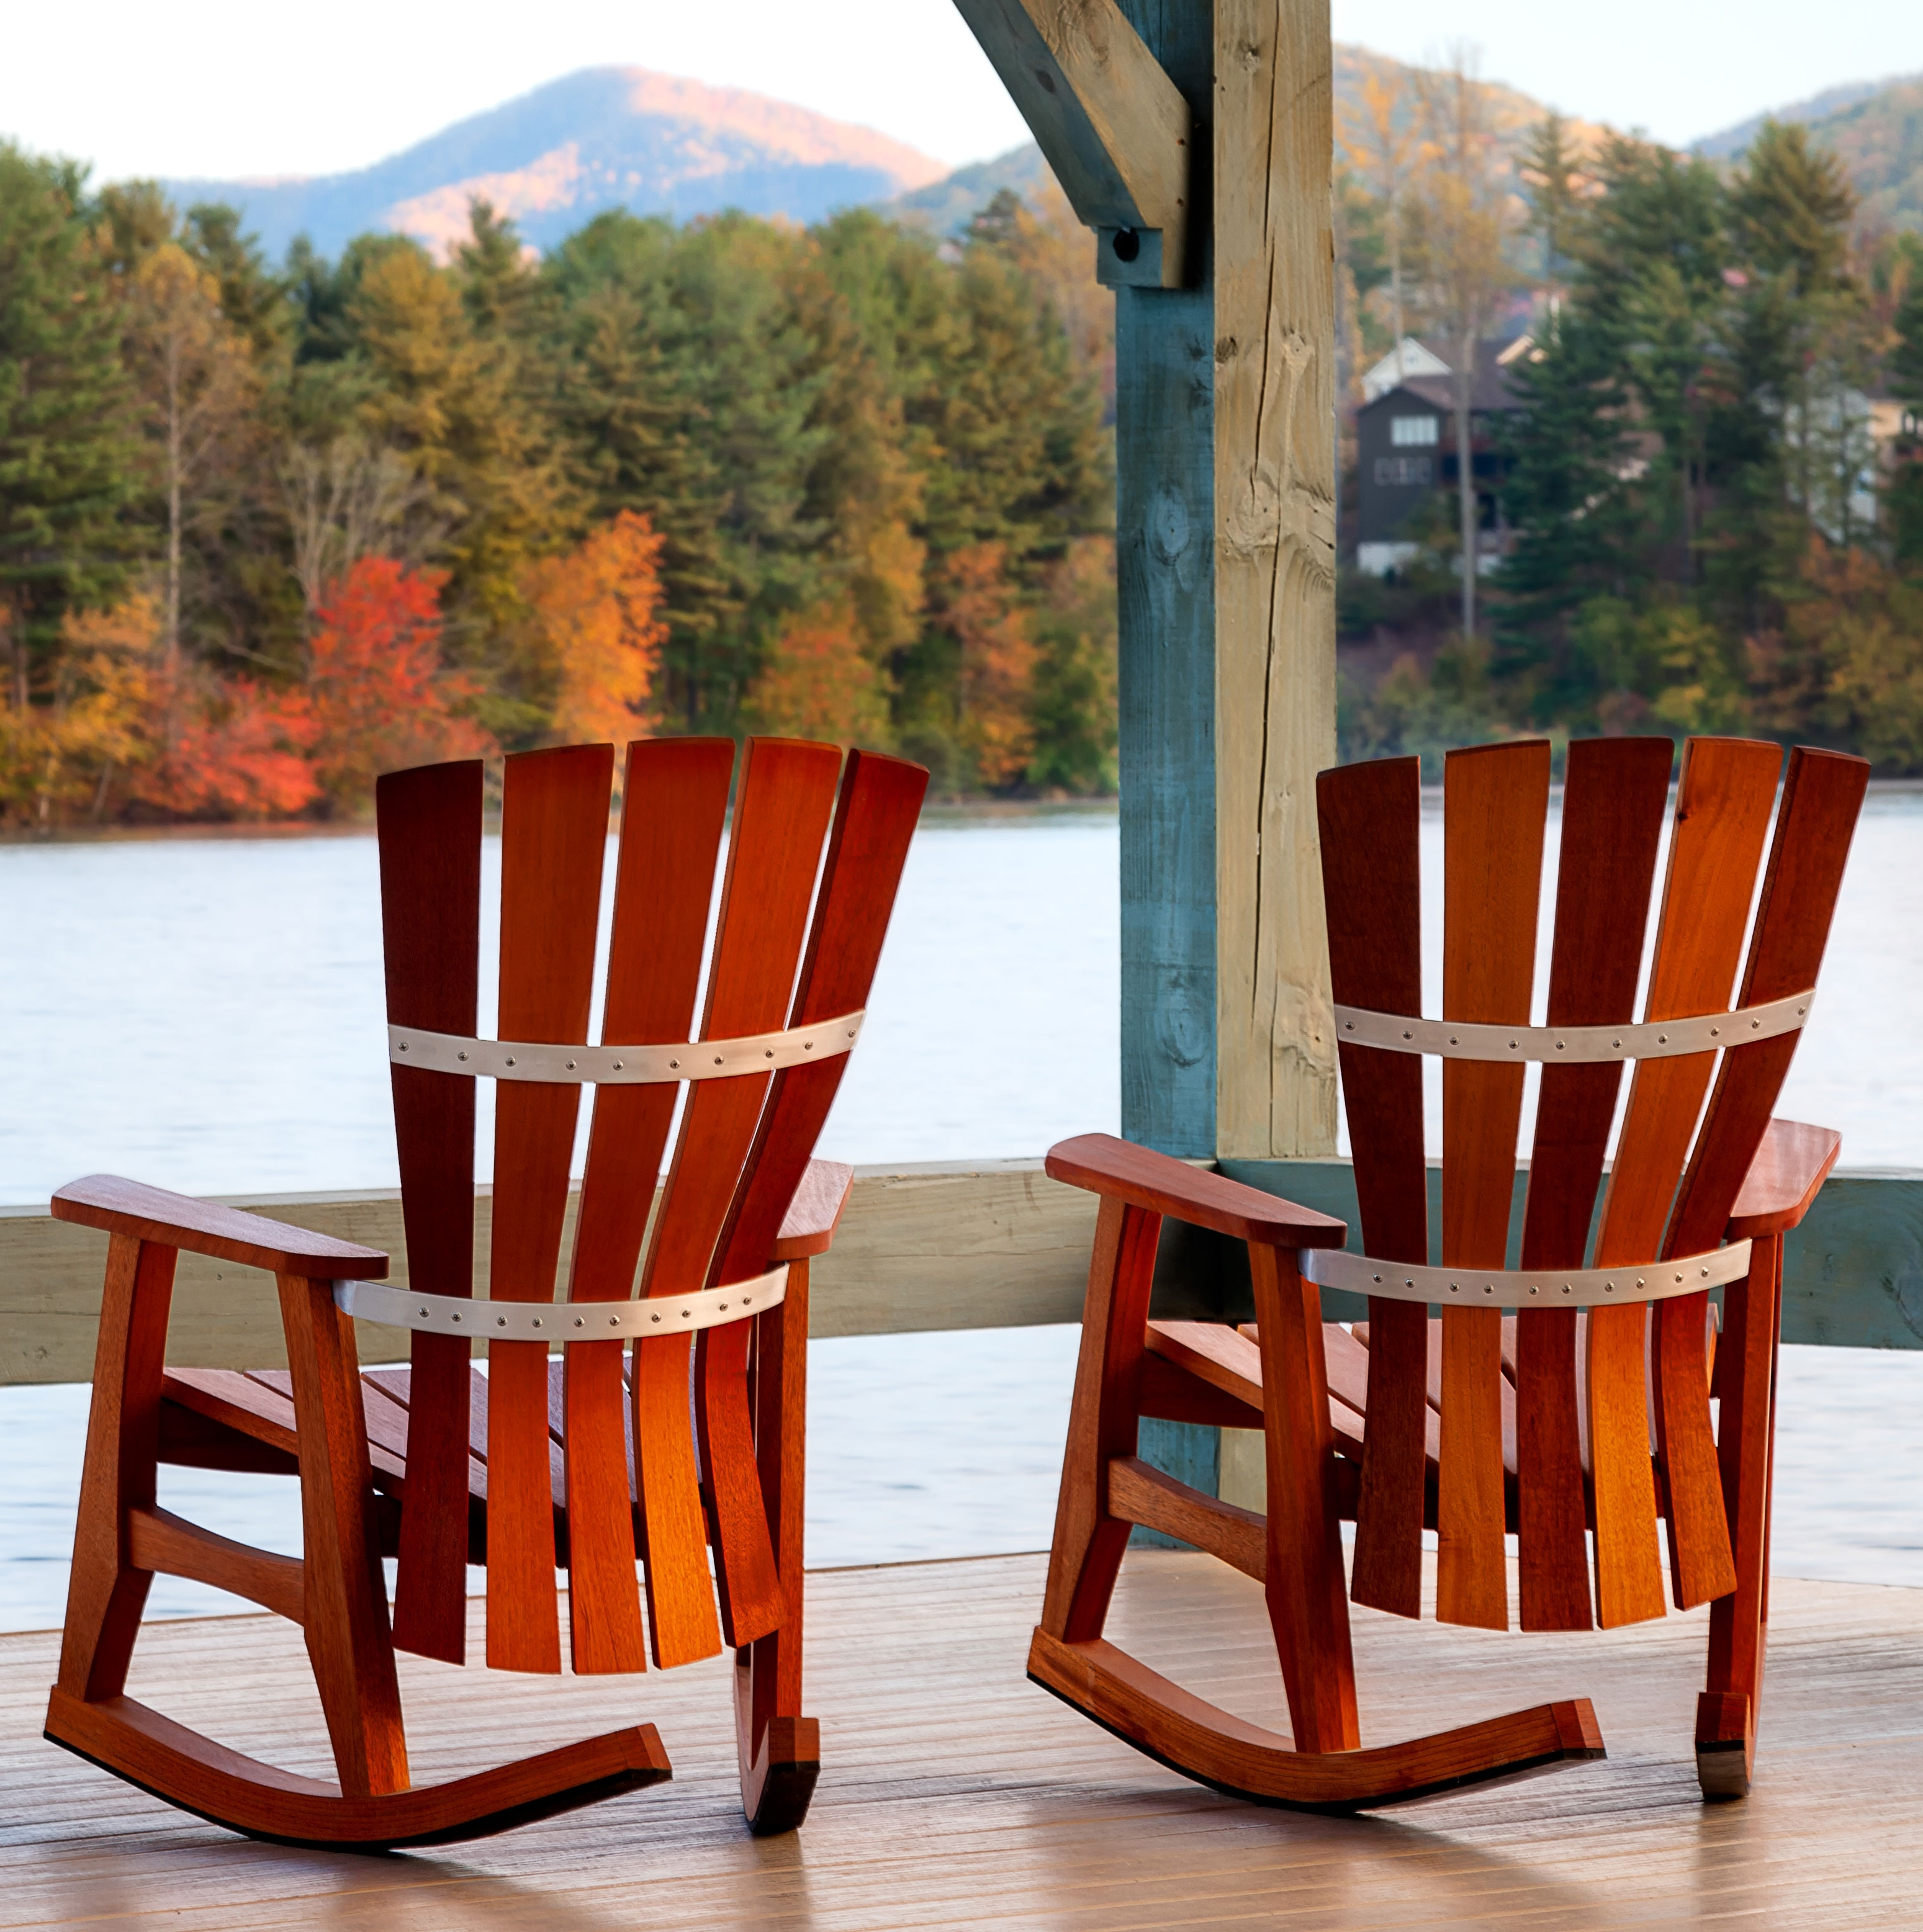 Rocking Chair Outdoor Wooden In Newest Best Finish For Outdoor Furniture Outdoor Designs From Best Stain (View 18 of 20)